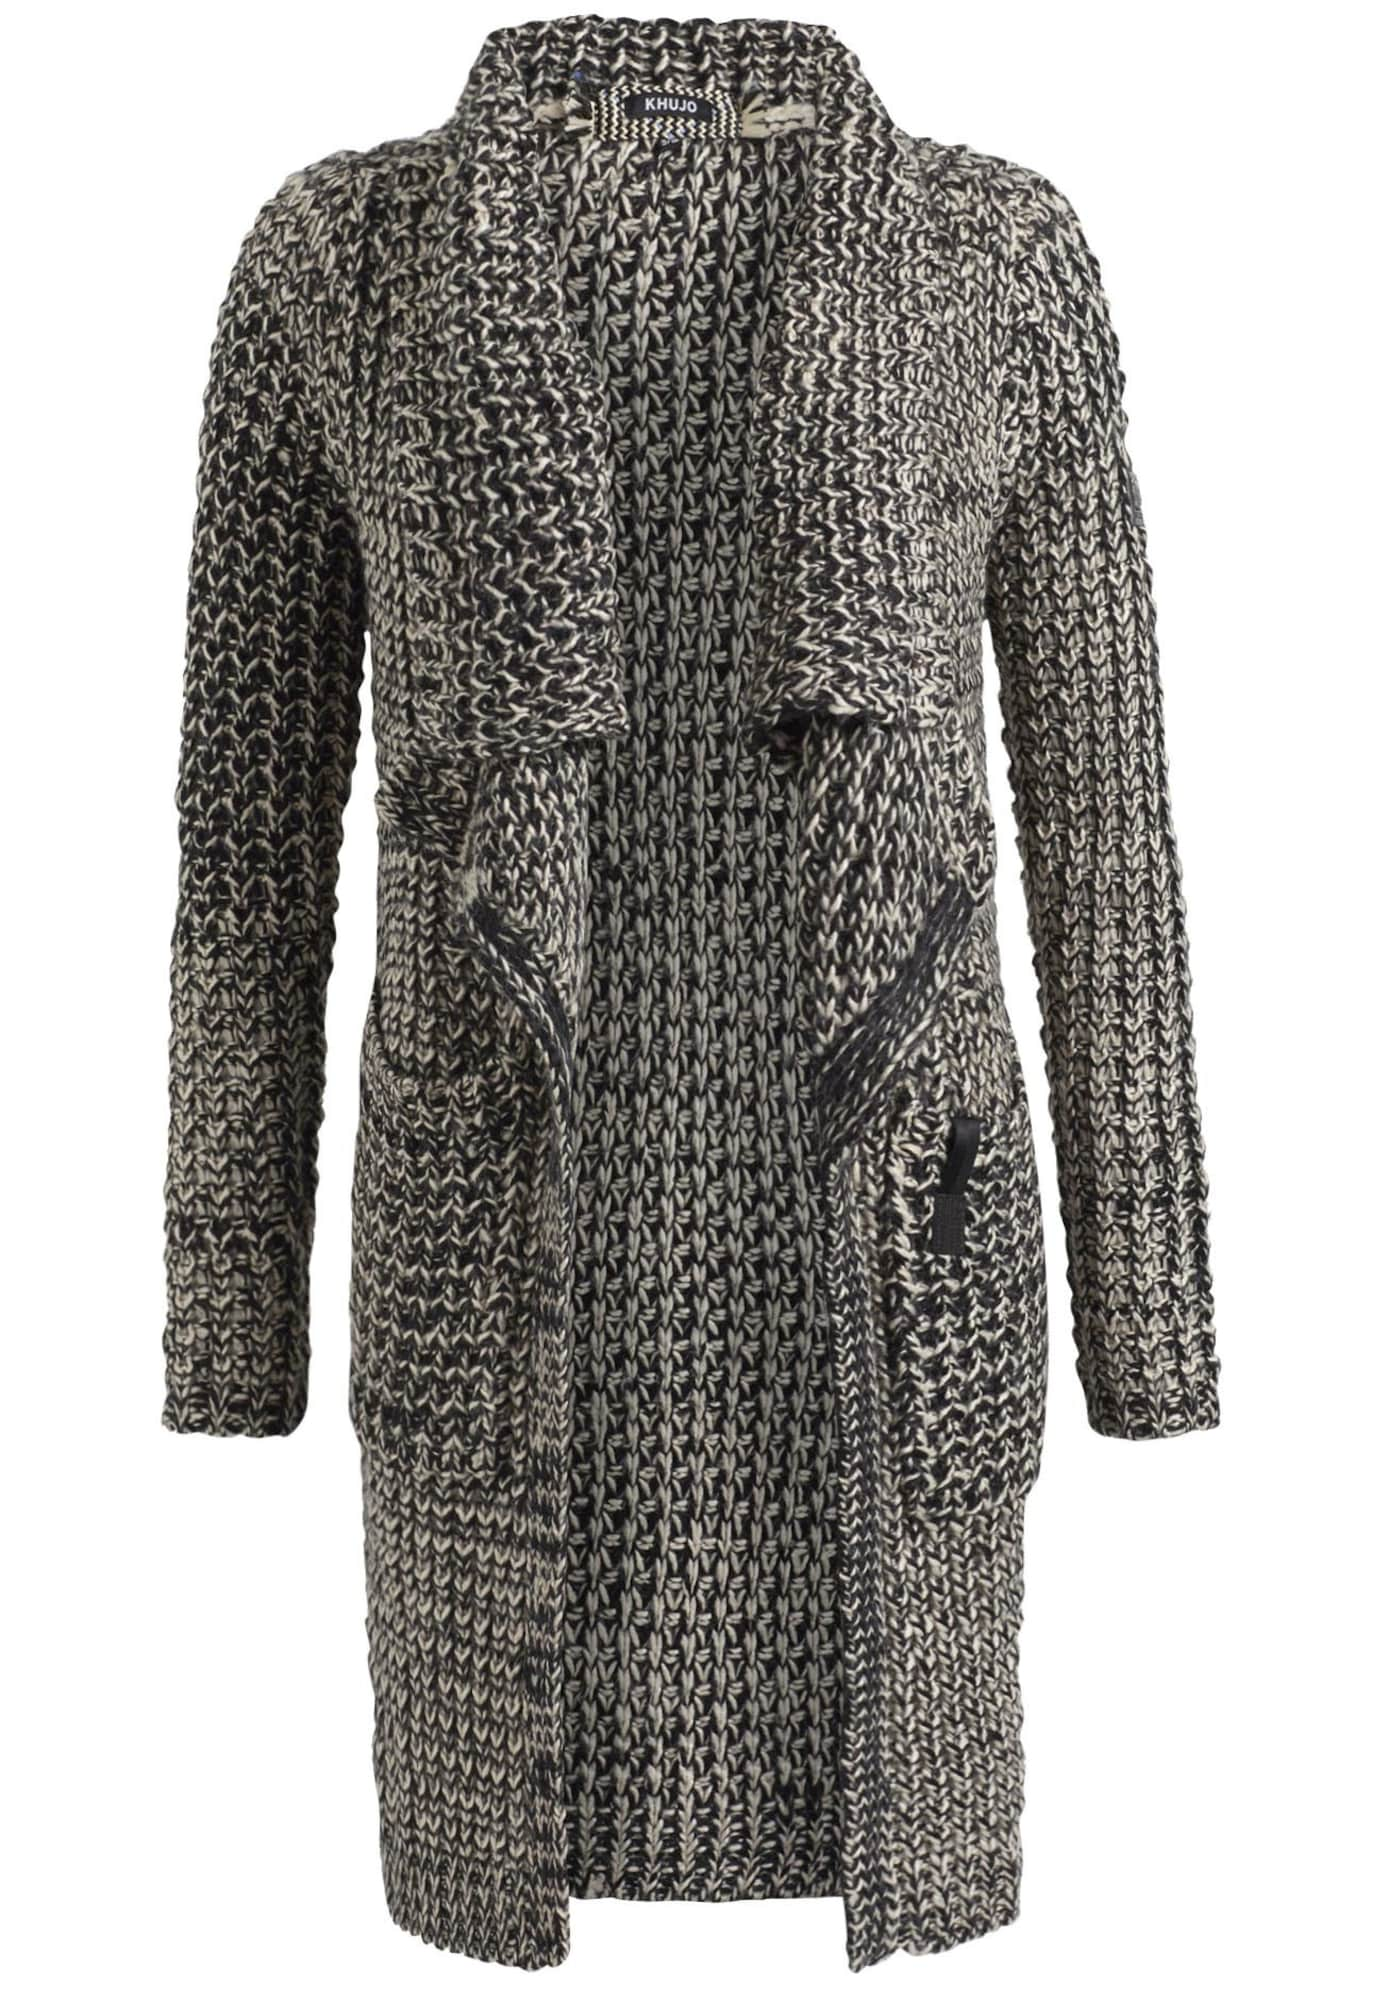 Strickjacke 'CARLINA' | Bekleidung > Strickjacken & -mäntel > Strickjacken | Khujo